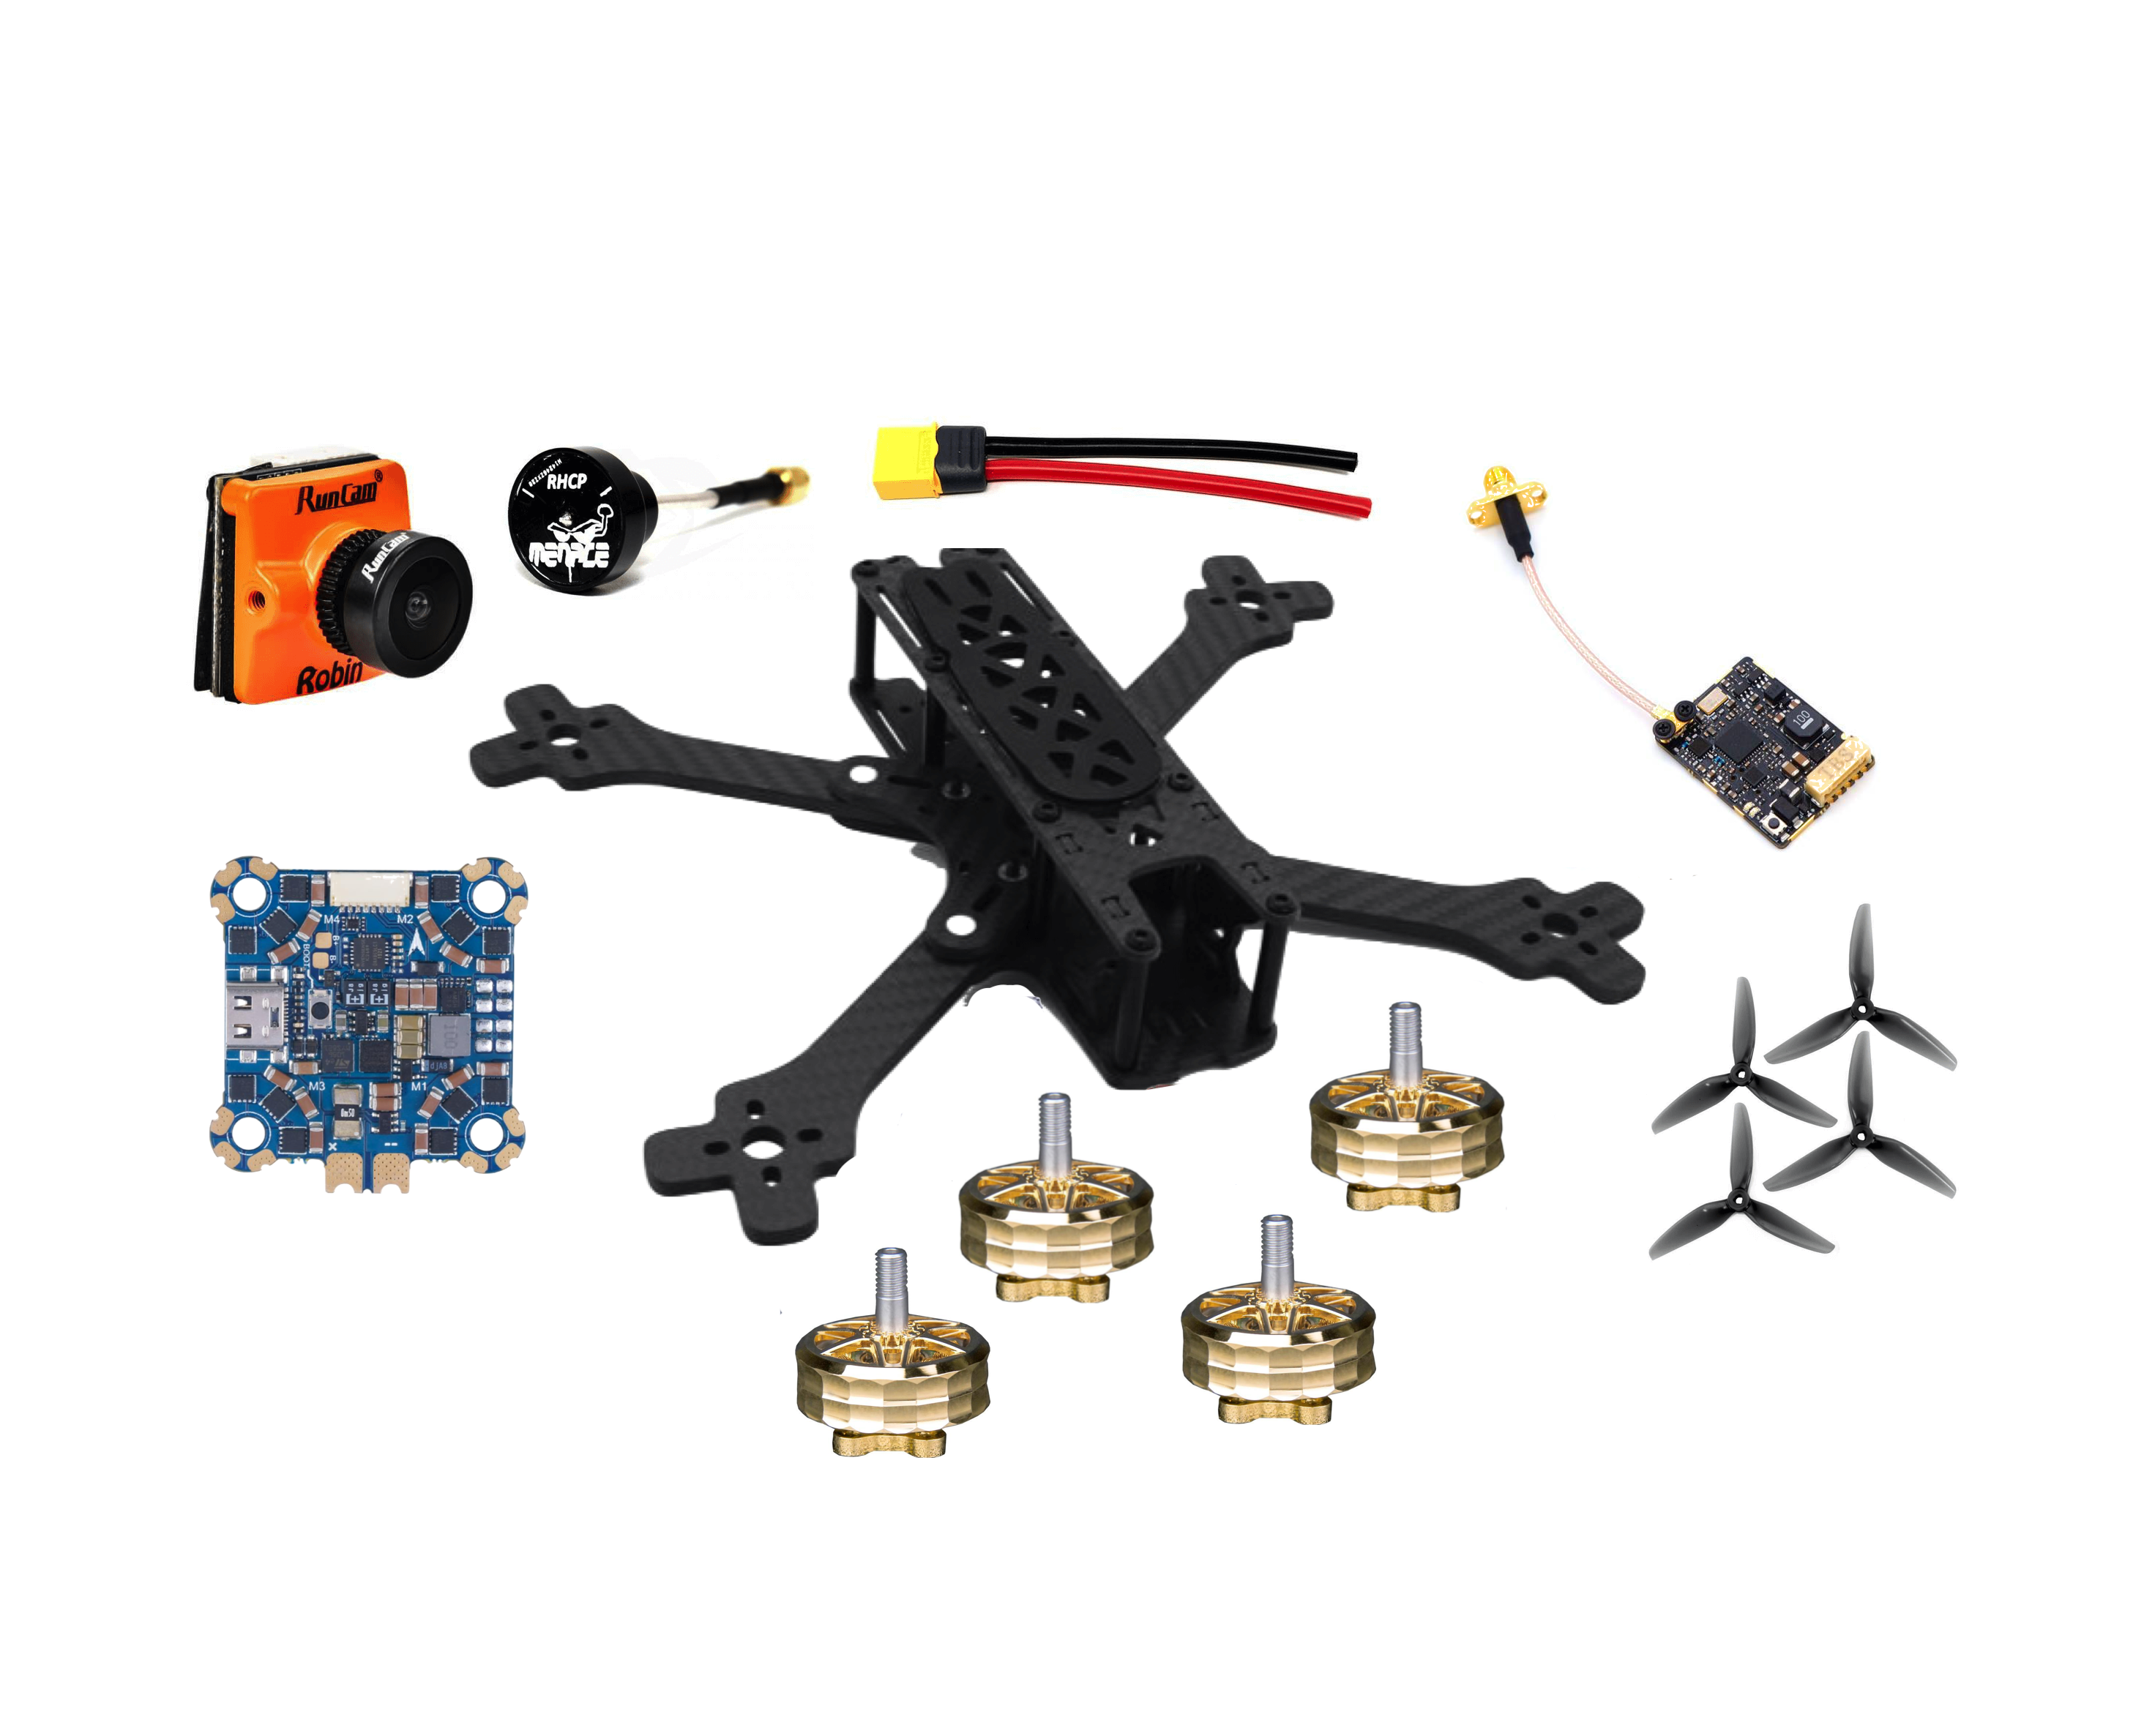 build your own freestyle drone 6s